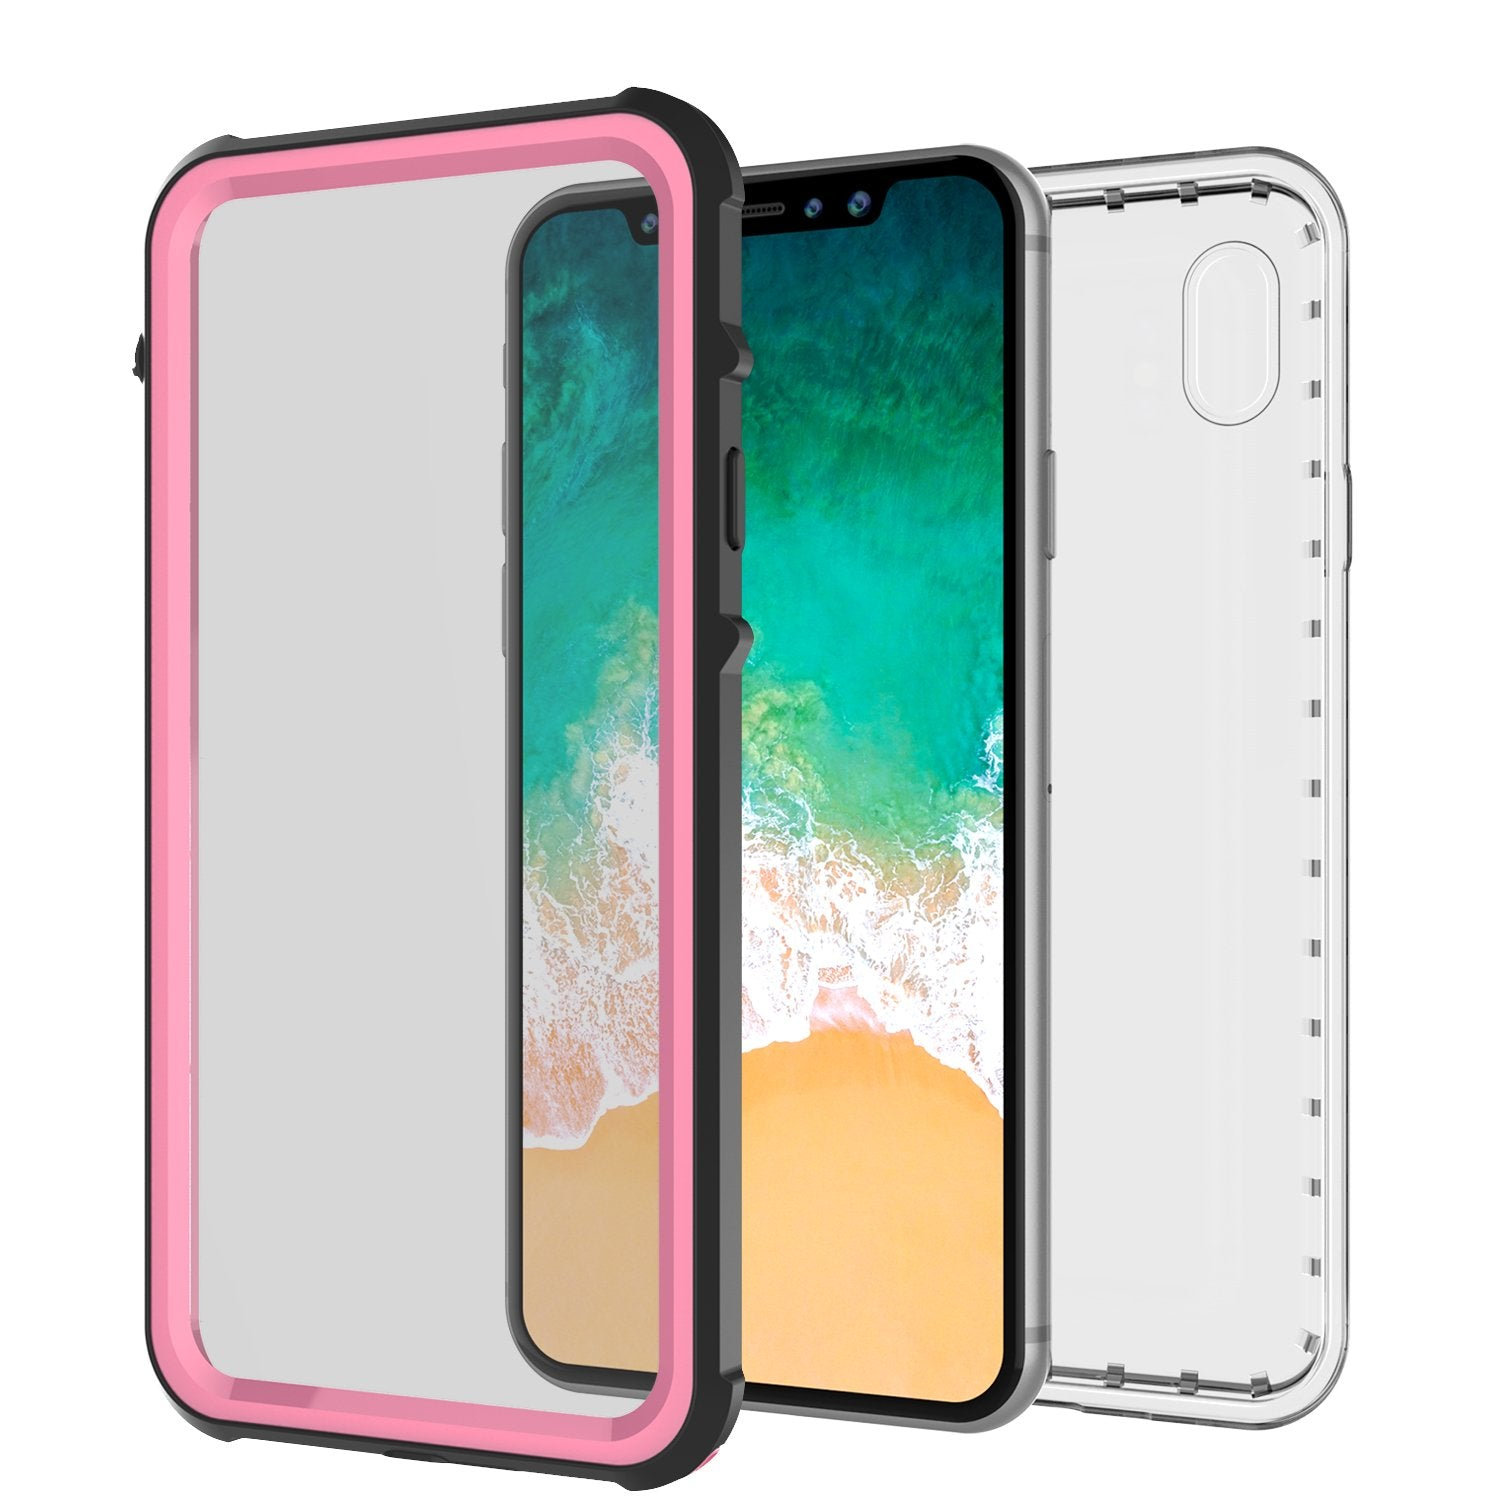 iPhone X Case, PUNKCase [CRYSTAL SERIES] Protective IP68 Certified Cover [Pink] - PunkCase NZ